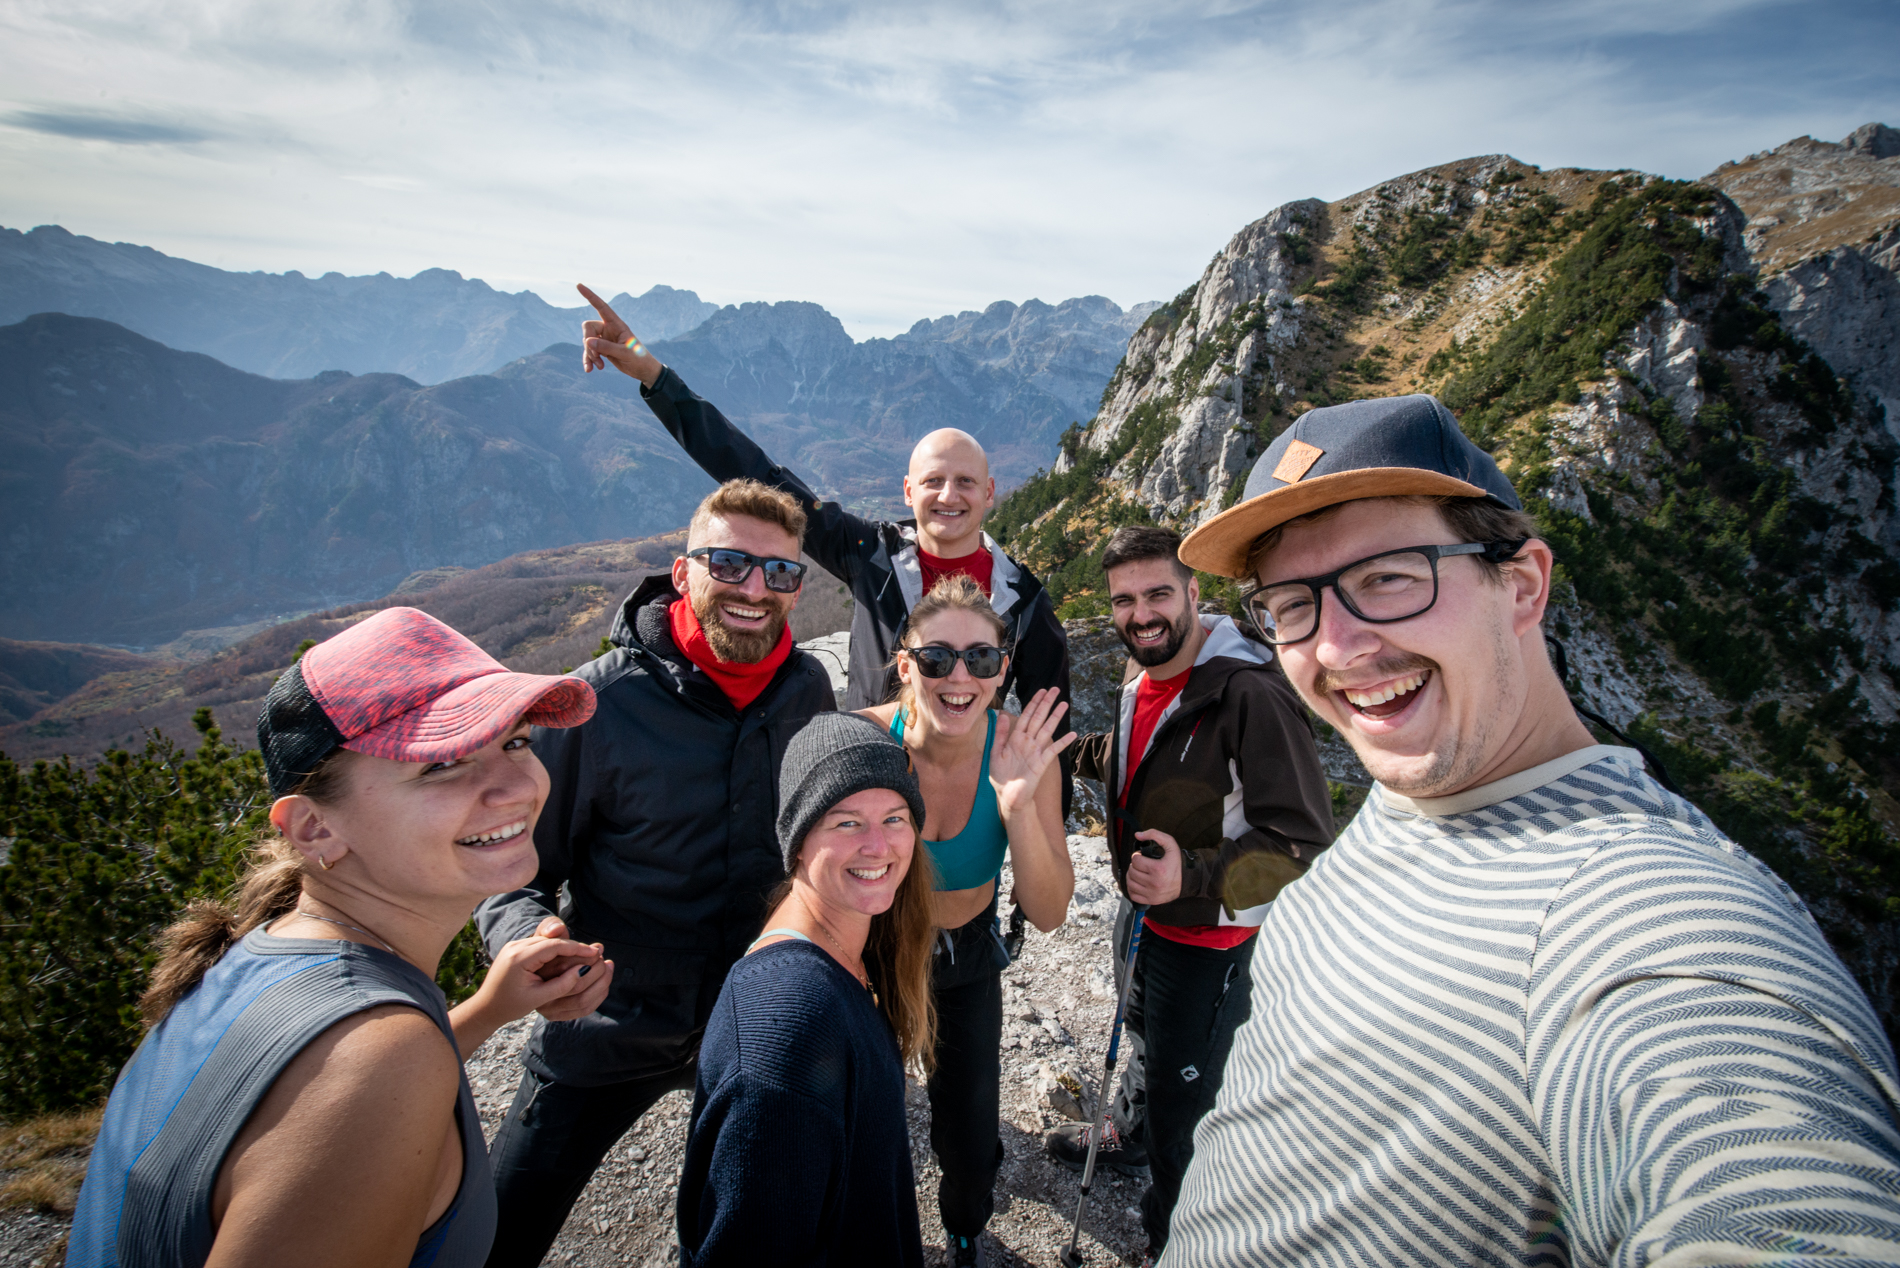 Ellis & me with a group they met during the Theth to Valbona hike.